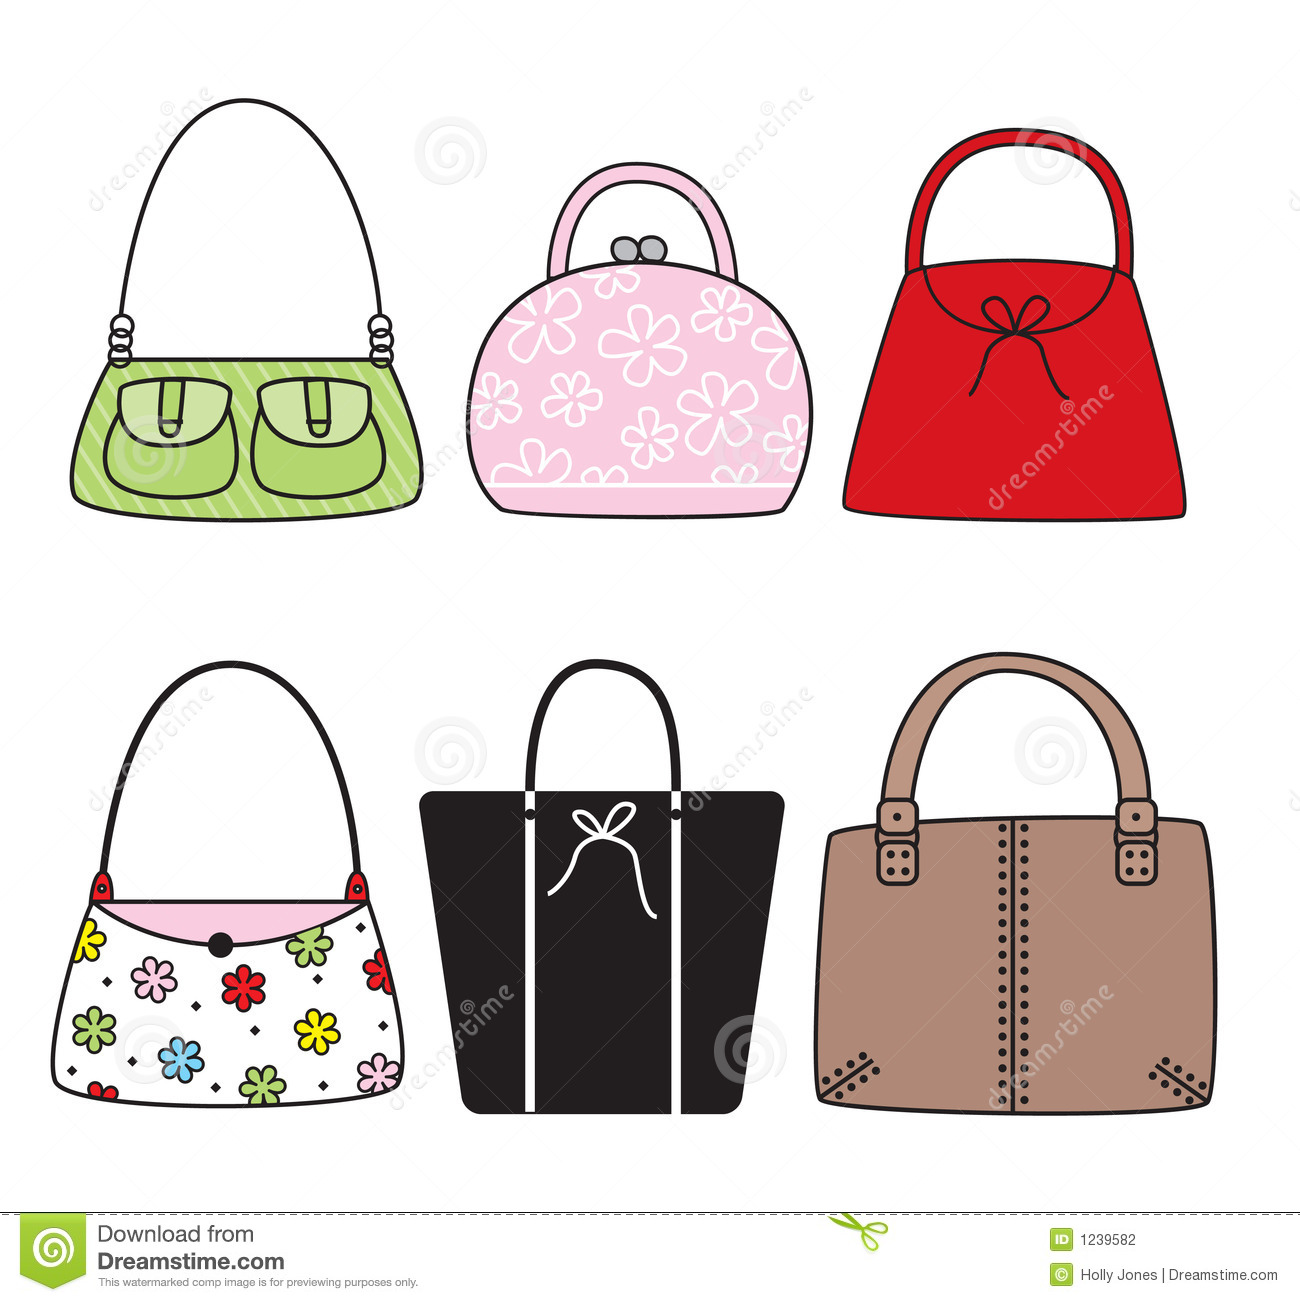 Handbags clipart free.